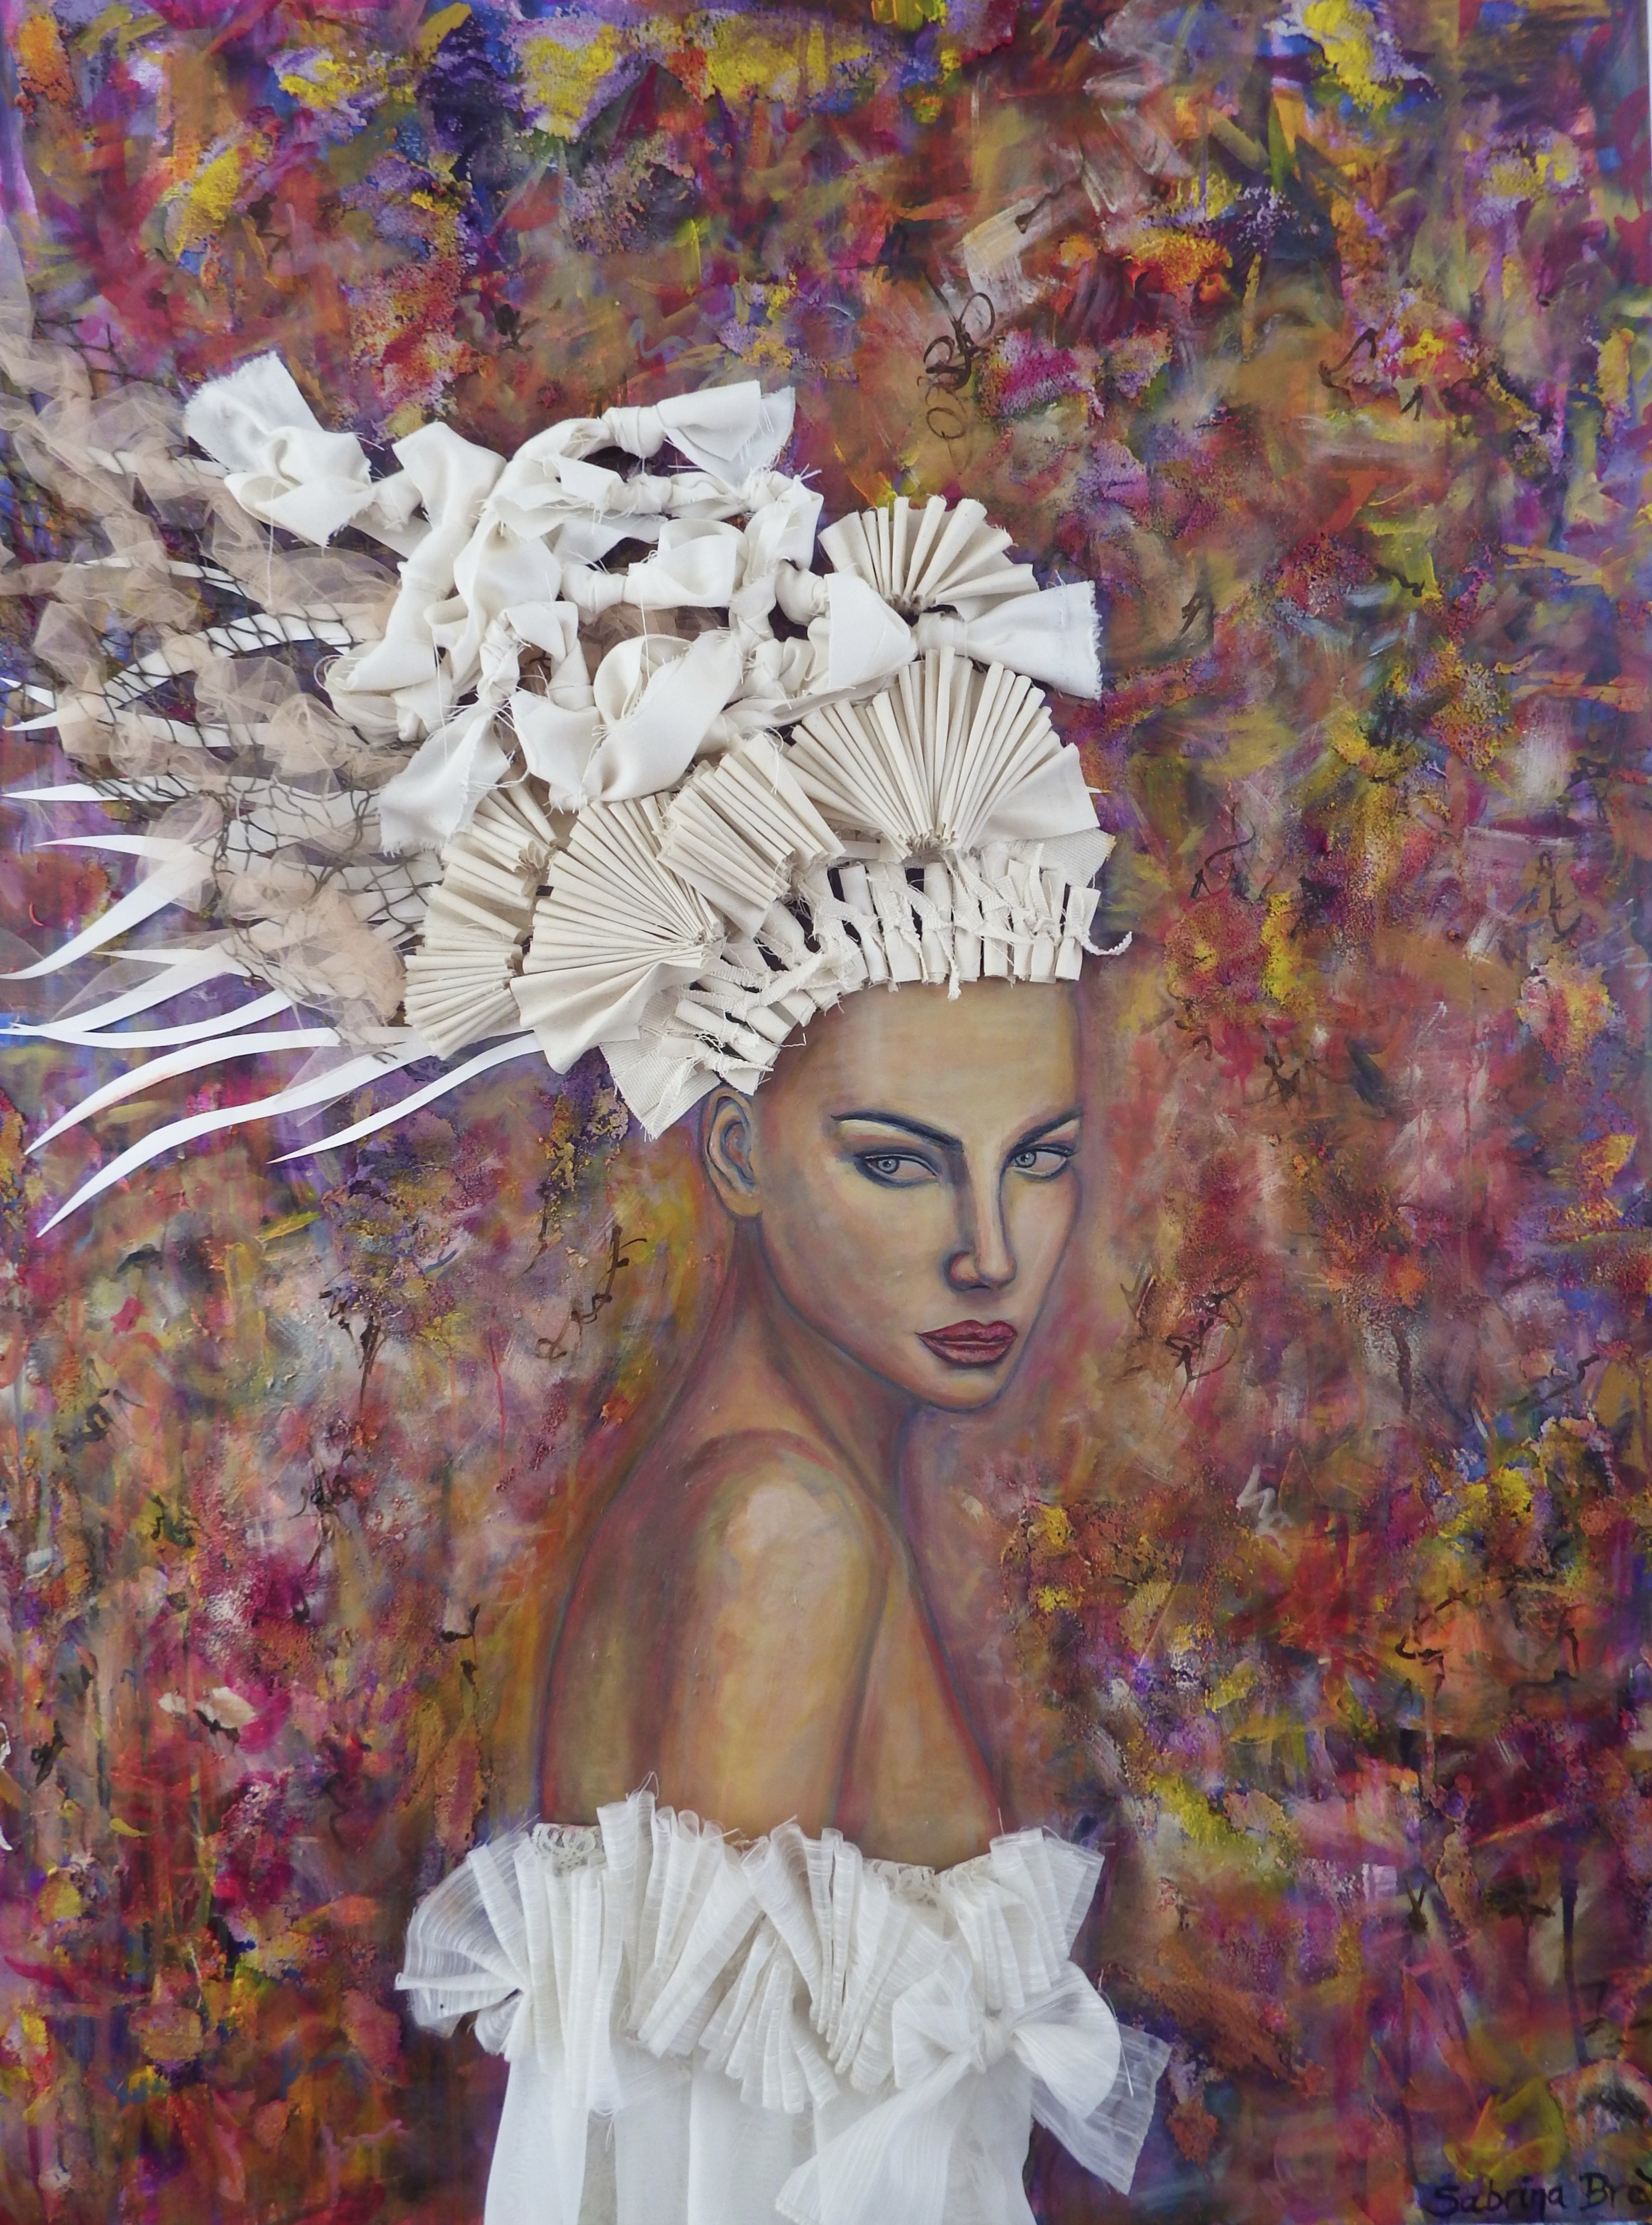 Between the Lilies, mixed media on canvas, by Sabrina Brett